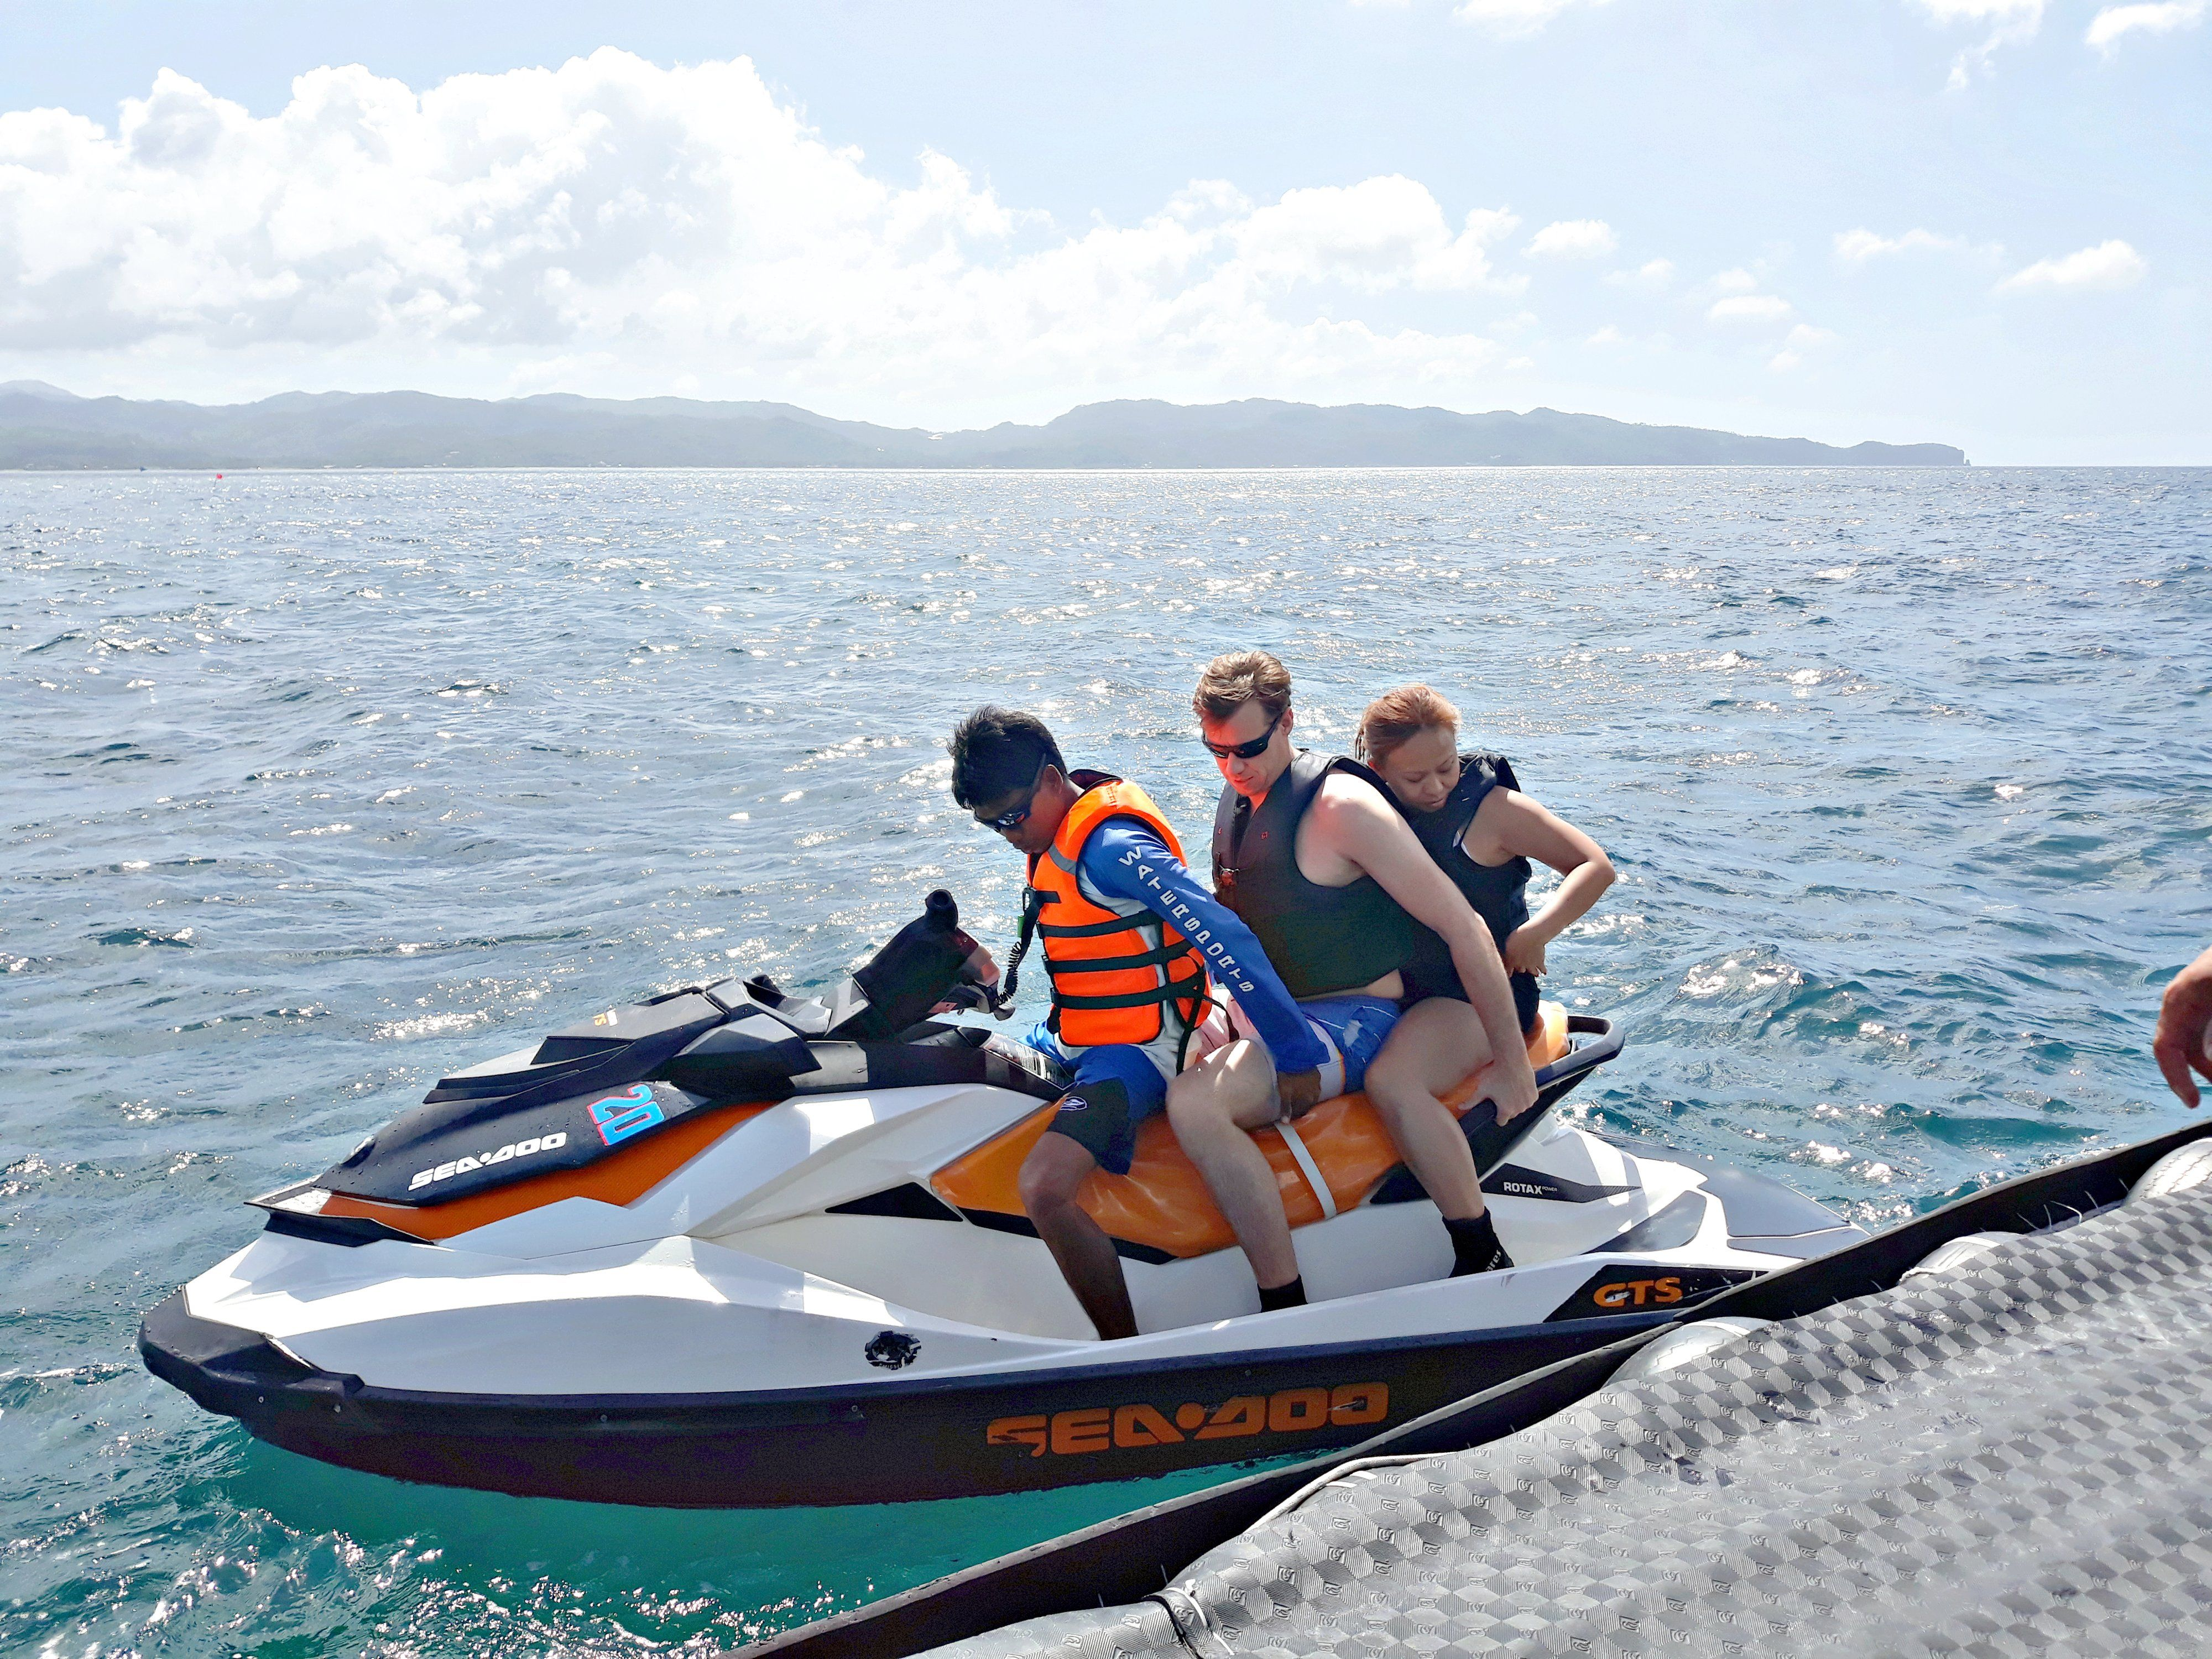 From Jenny After Their Helmetdiving Frans And Emily Got Their Adrenaline Pumping On An Exciting Jetski Ride It Was A Jet Ski Jet Ski Rentals Water Sports